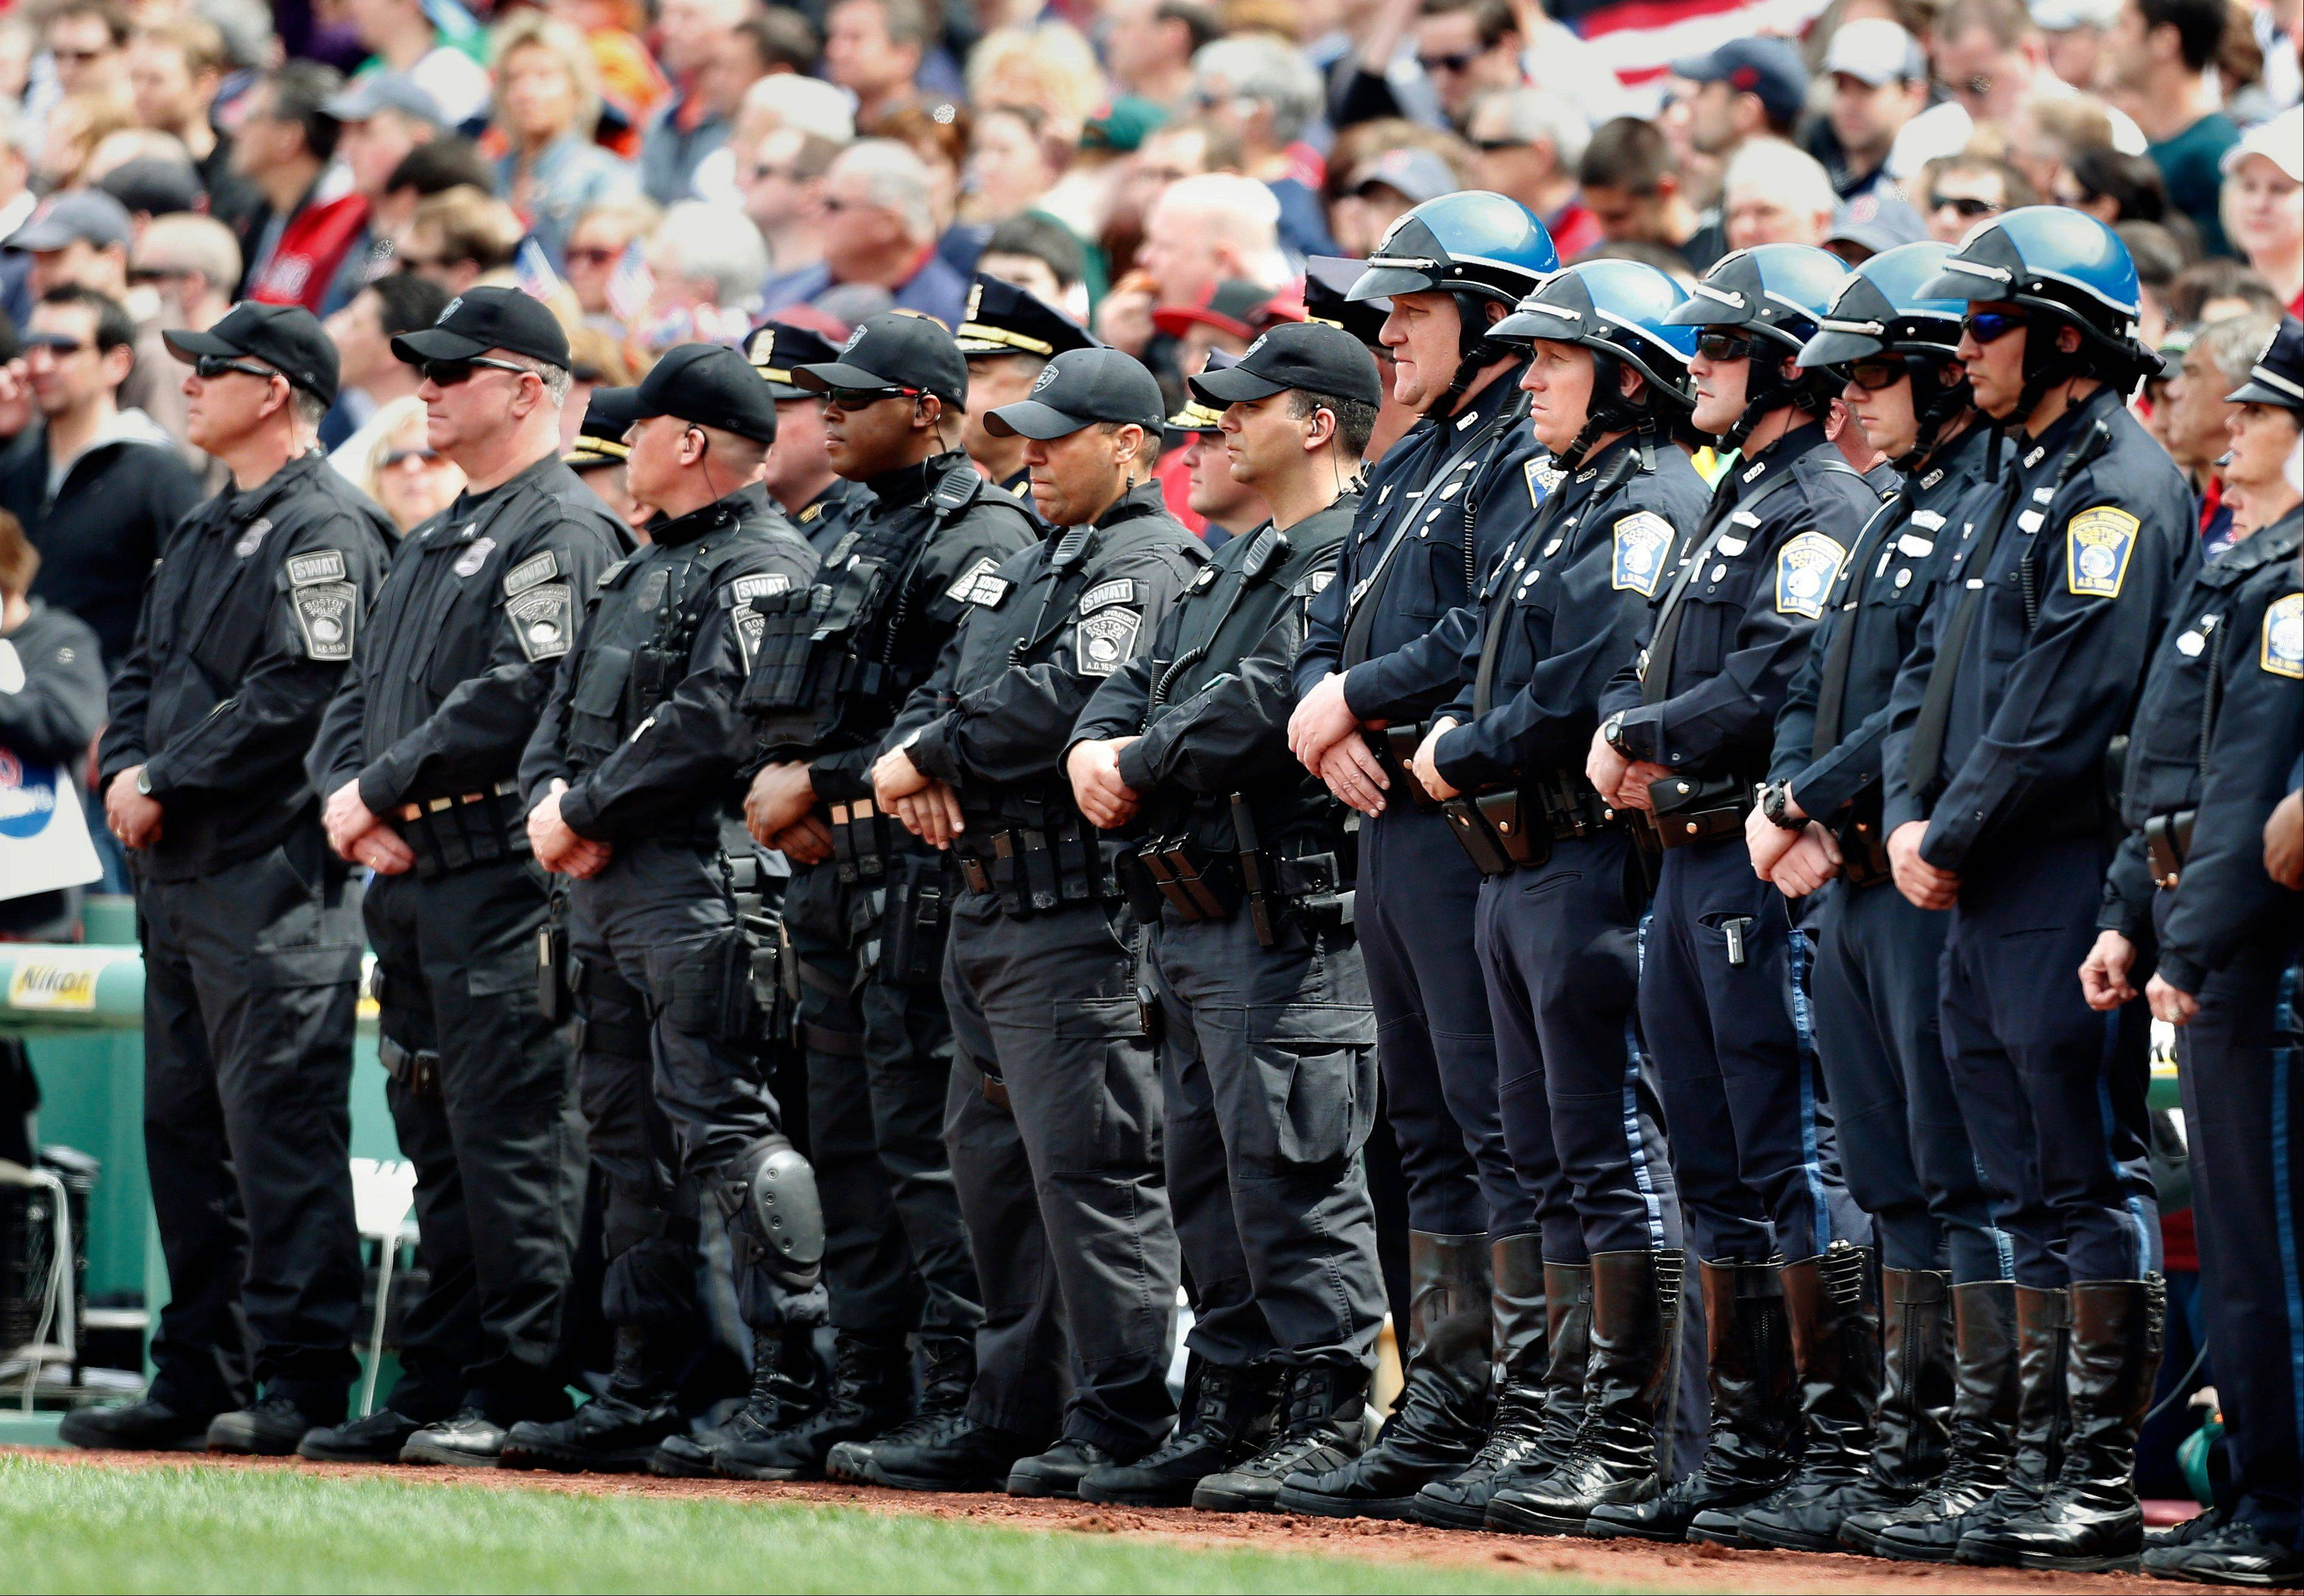 Boston police personnel stand on the field during ceremonies in honor of victims of and first responders to the Boston Marathon bombings, before a baseball game between the Boston Red Sox and the Kansas City Royals in Boston, Saturday, April 20, 2013.